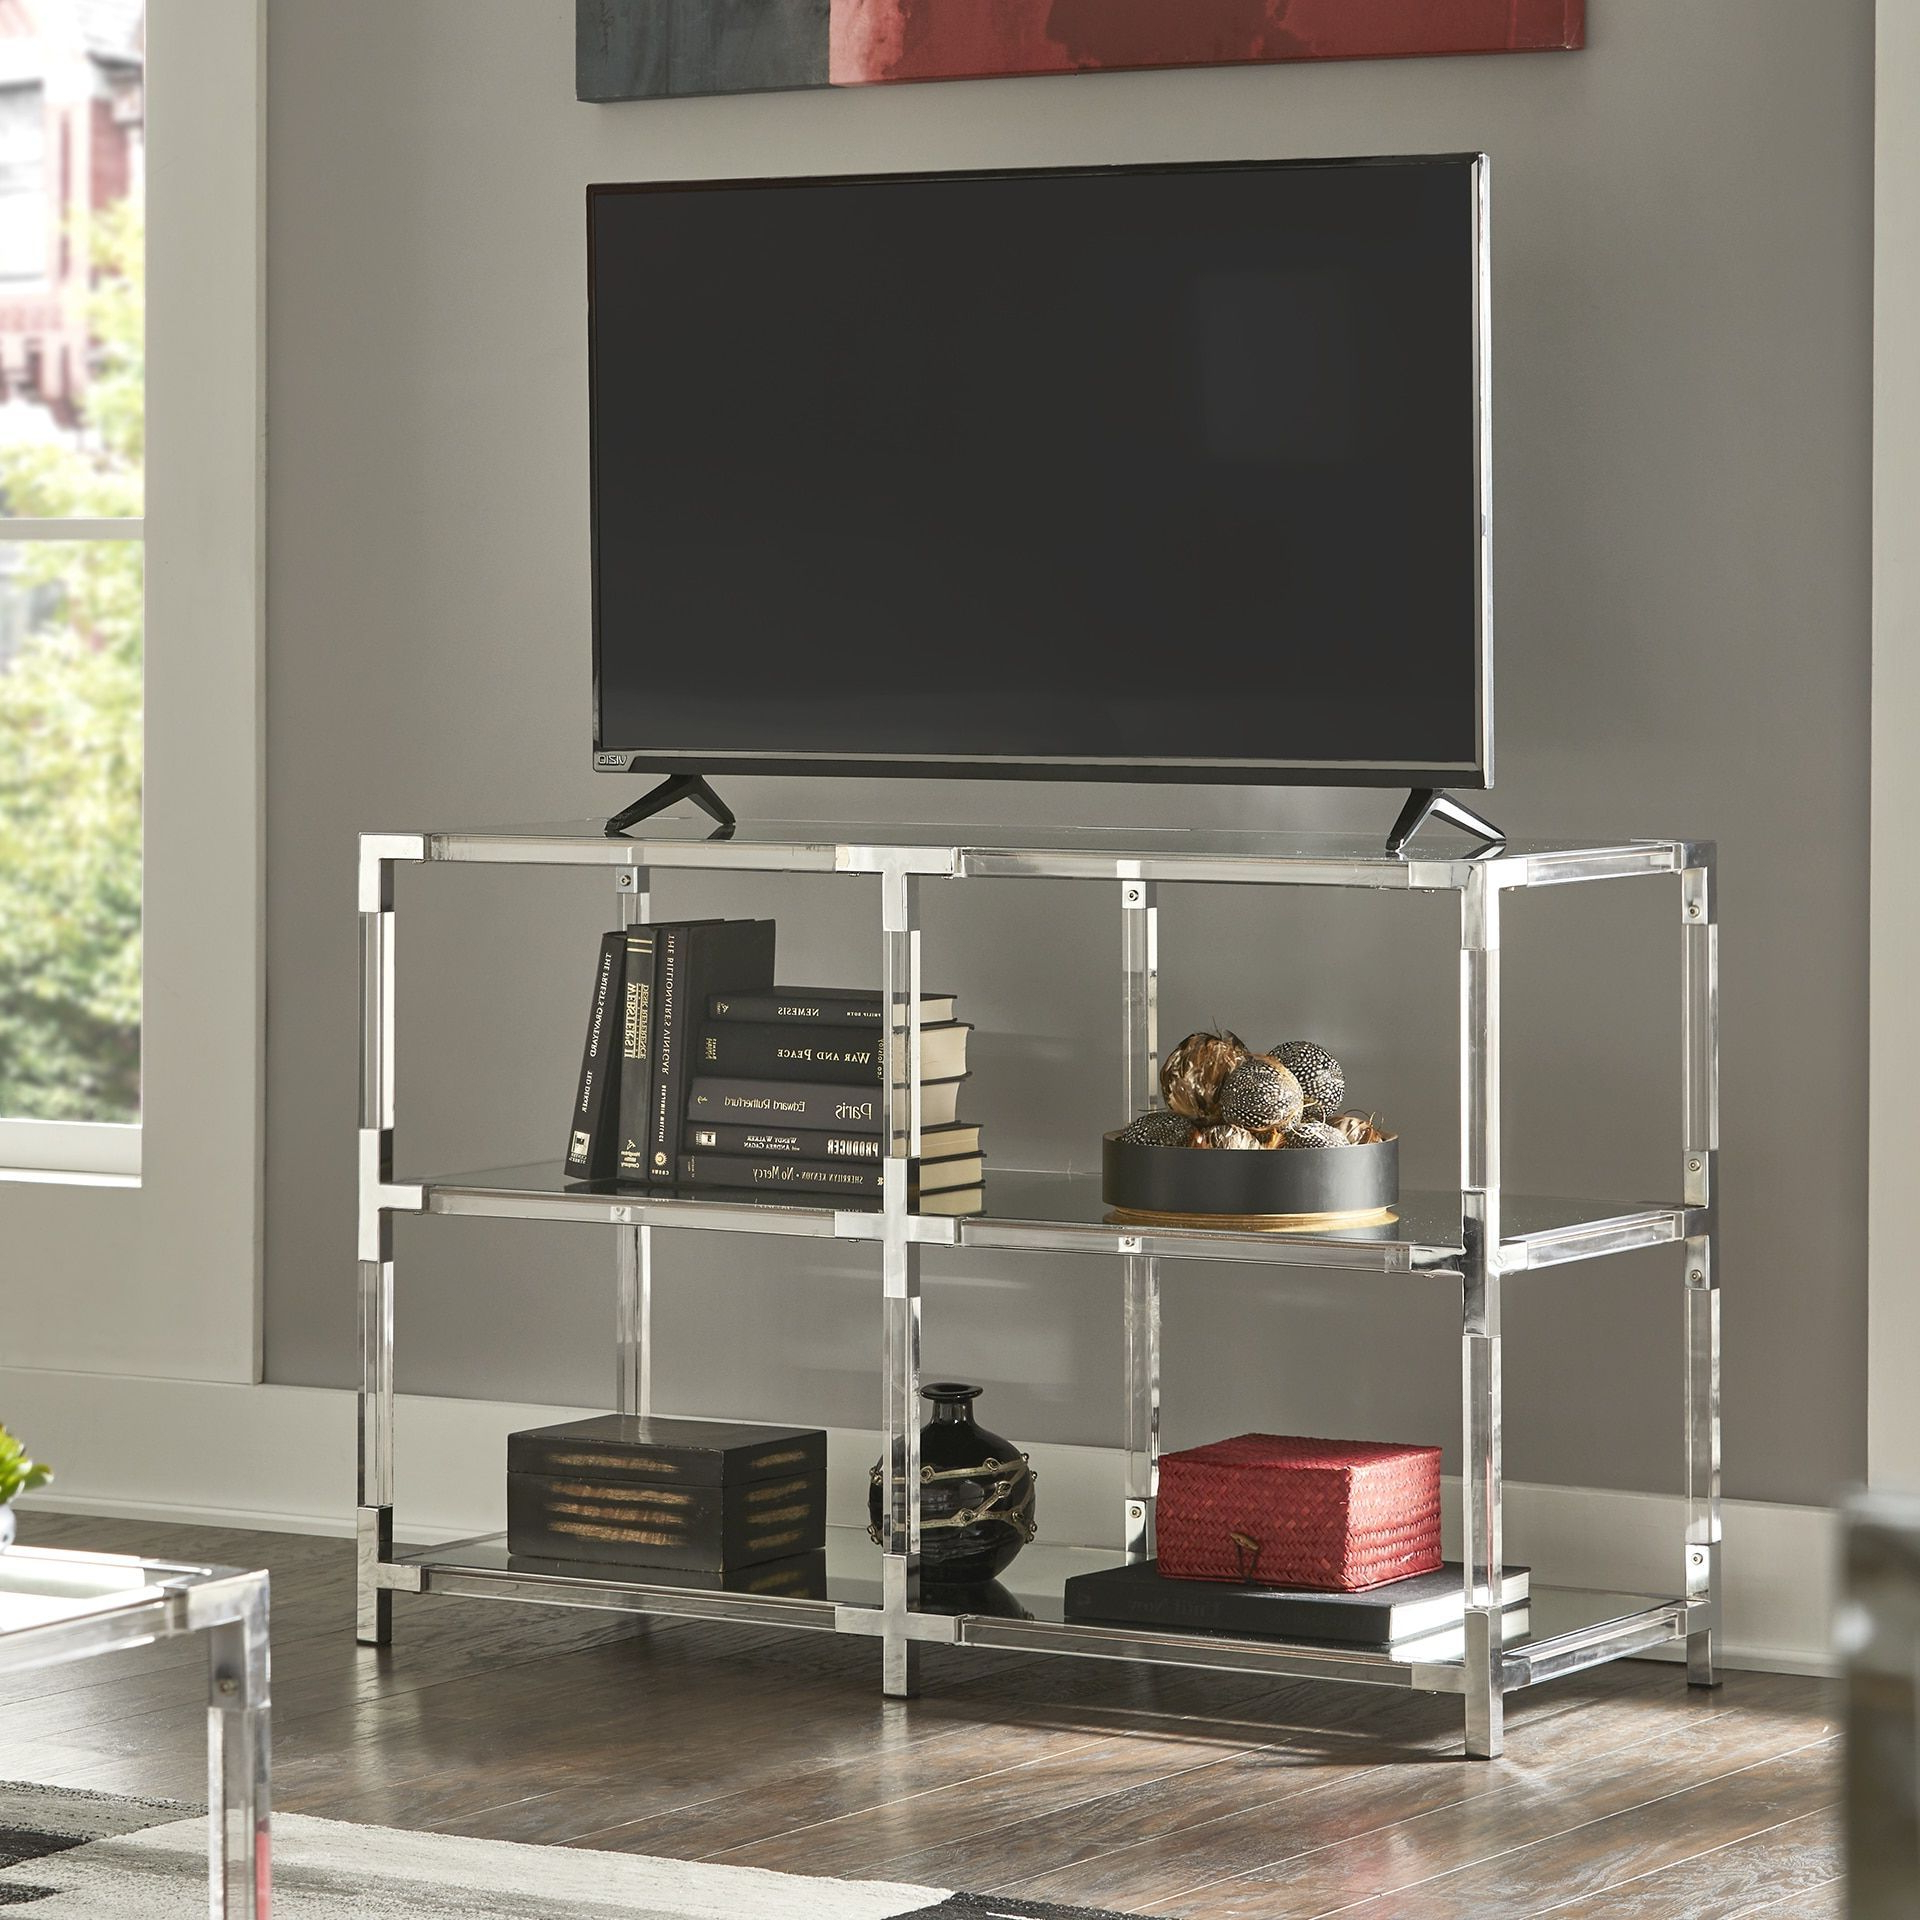 Trendy Cyrus Clear Chrome Corner Mirrored Shelf Sofa Table Tv With Regard To Fitzgerald Mirrored Tv Stands (View 17 of 25)